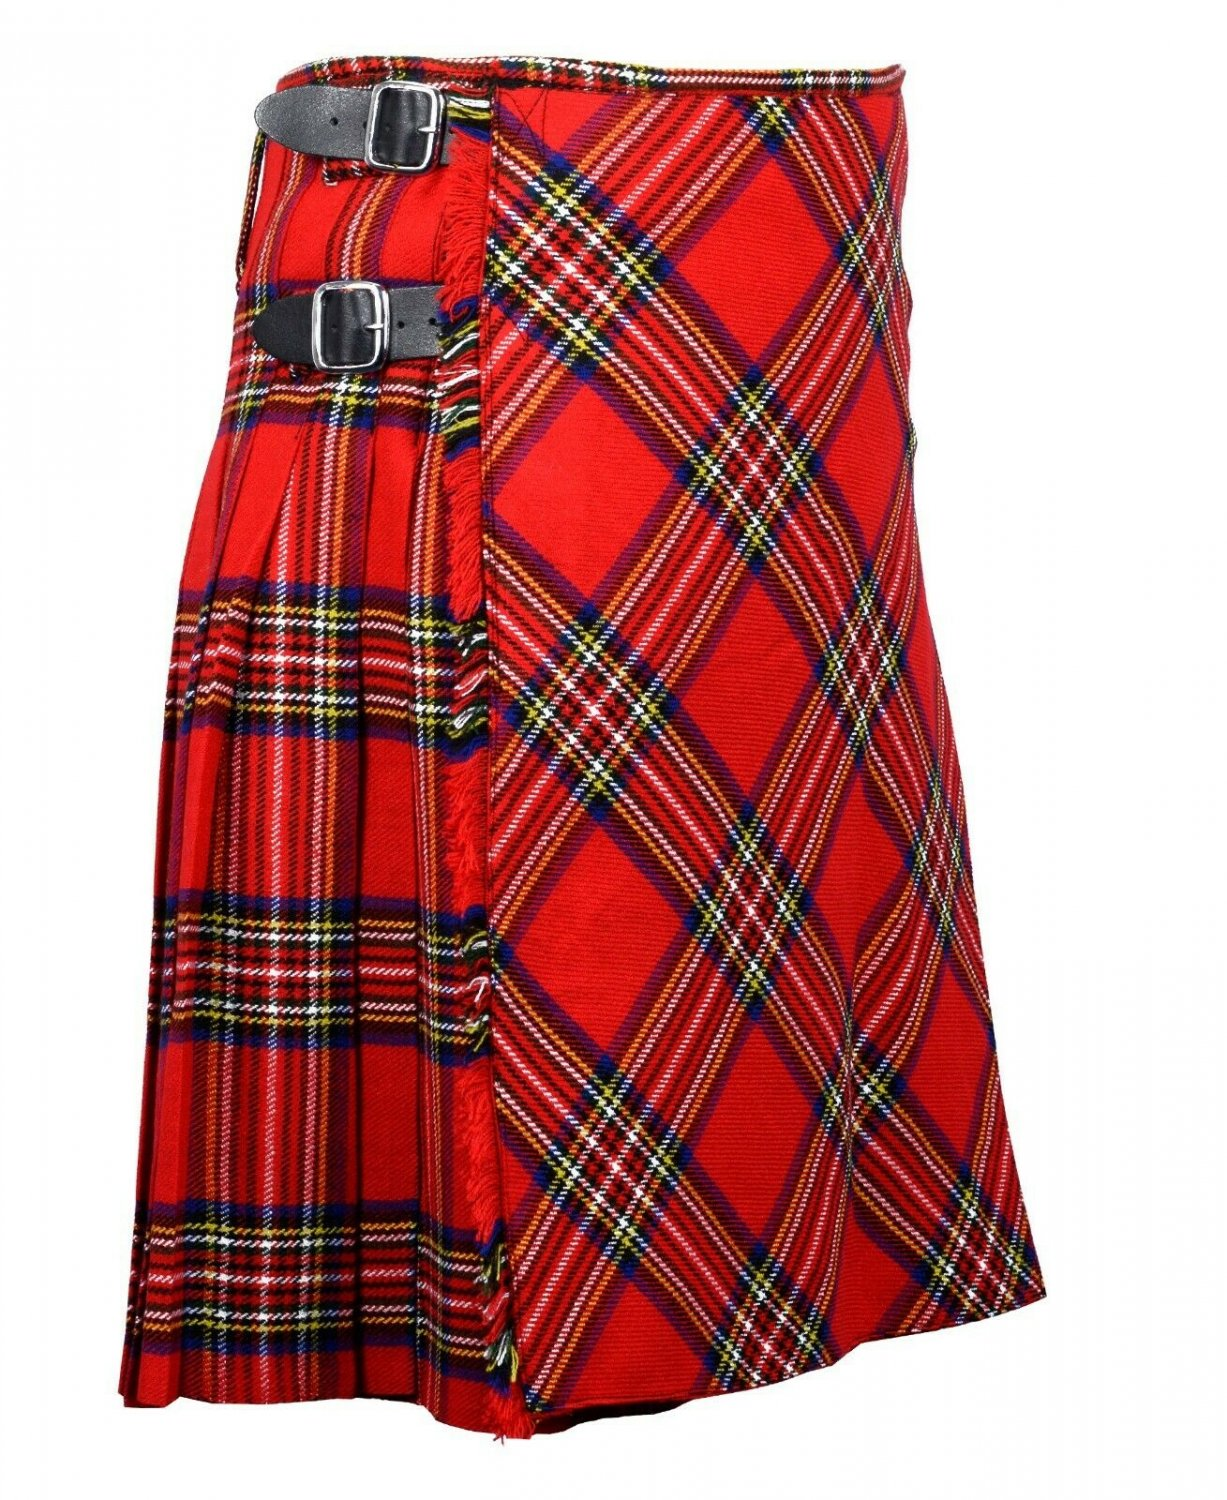 56 inches waist Bias Apron Traditional 5 Yard Scottish Kilt for Men - Royal Stewart  Tartan